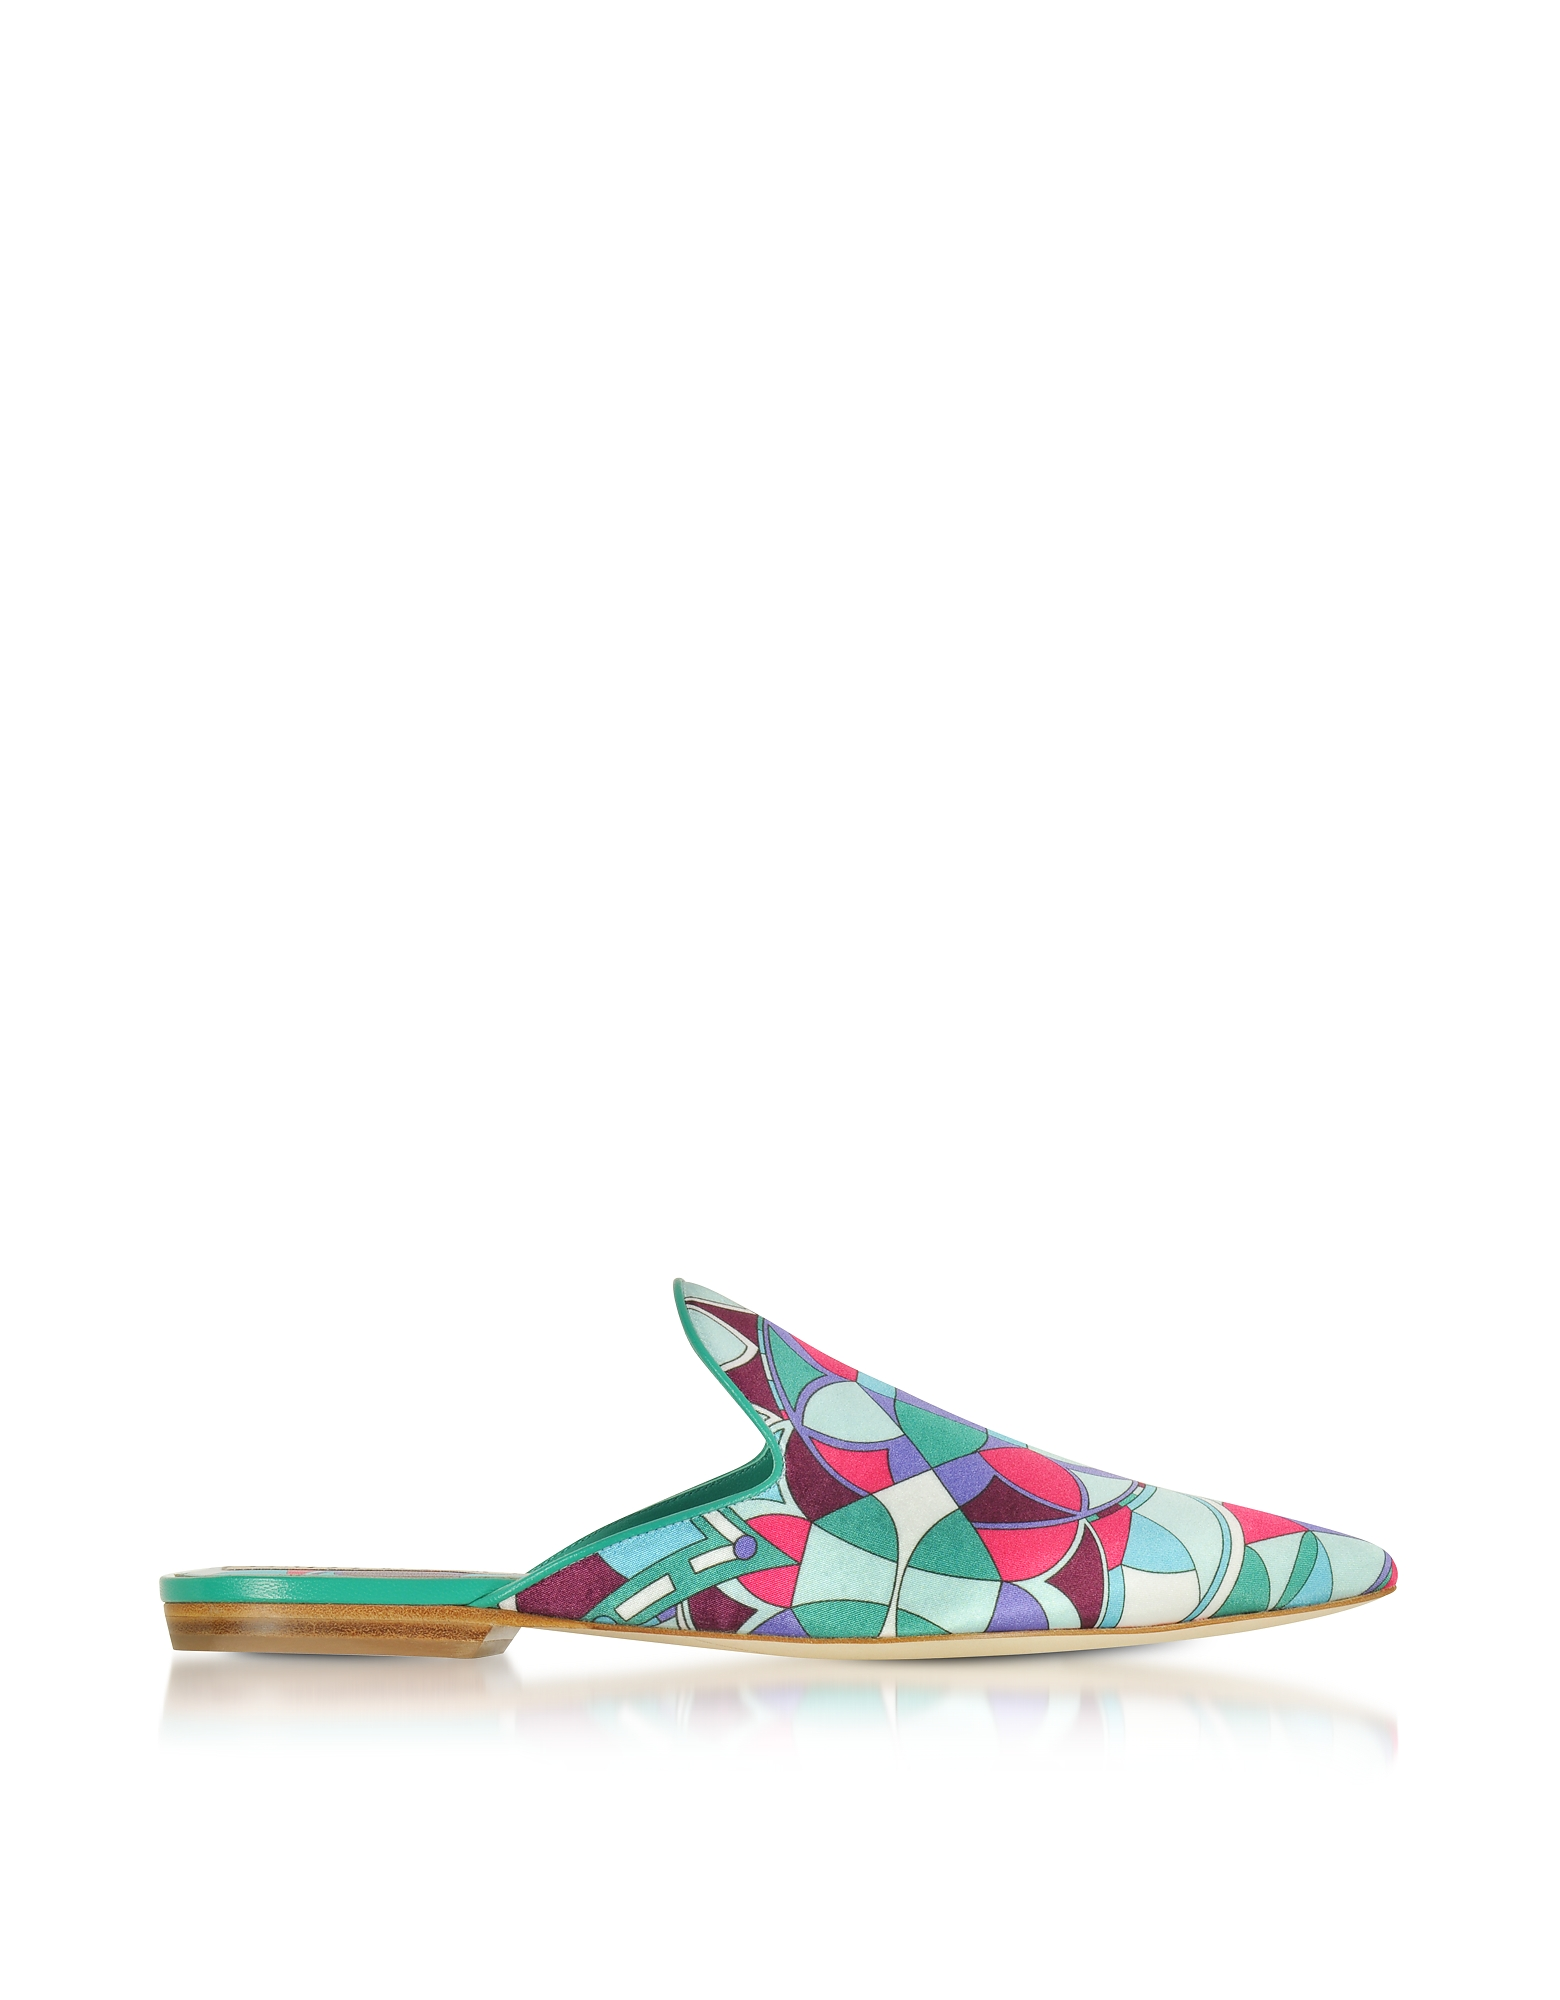 Emilio Pucci Shoes, Optical Printed Leather Slippers